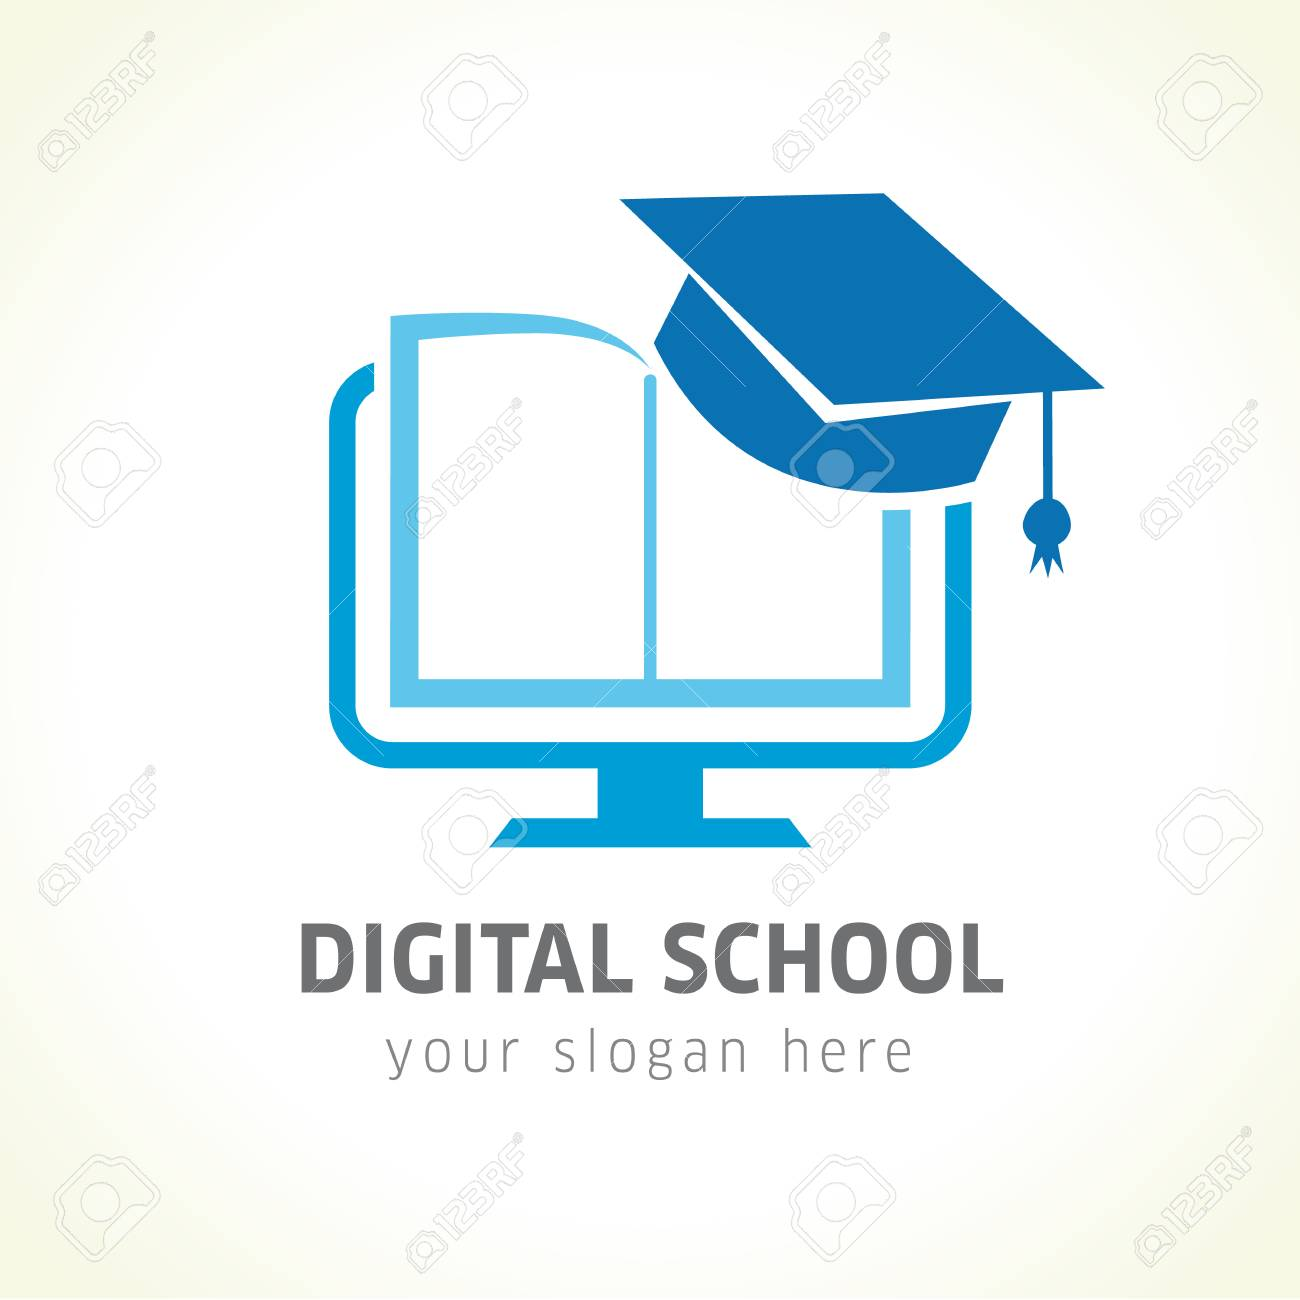 Digital School Book Online Education Logo Digital School Book